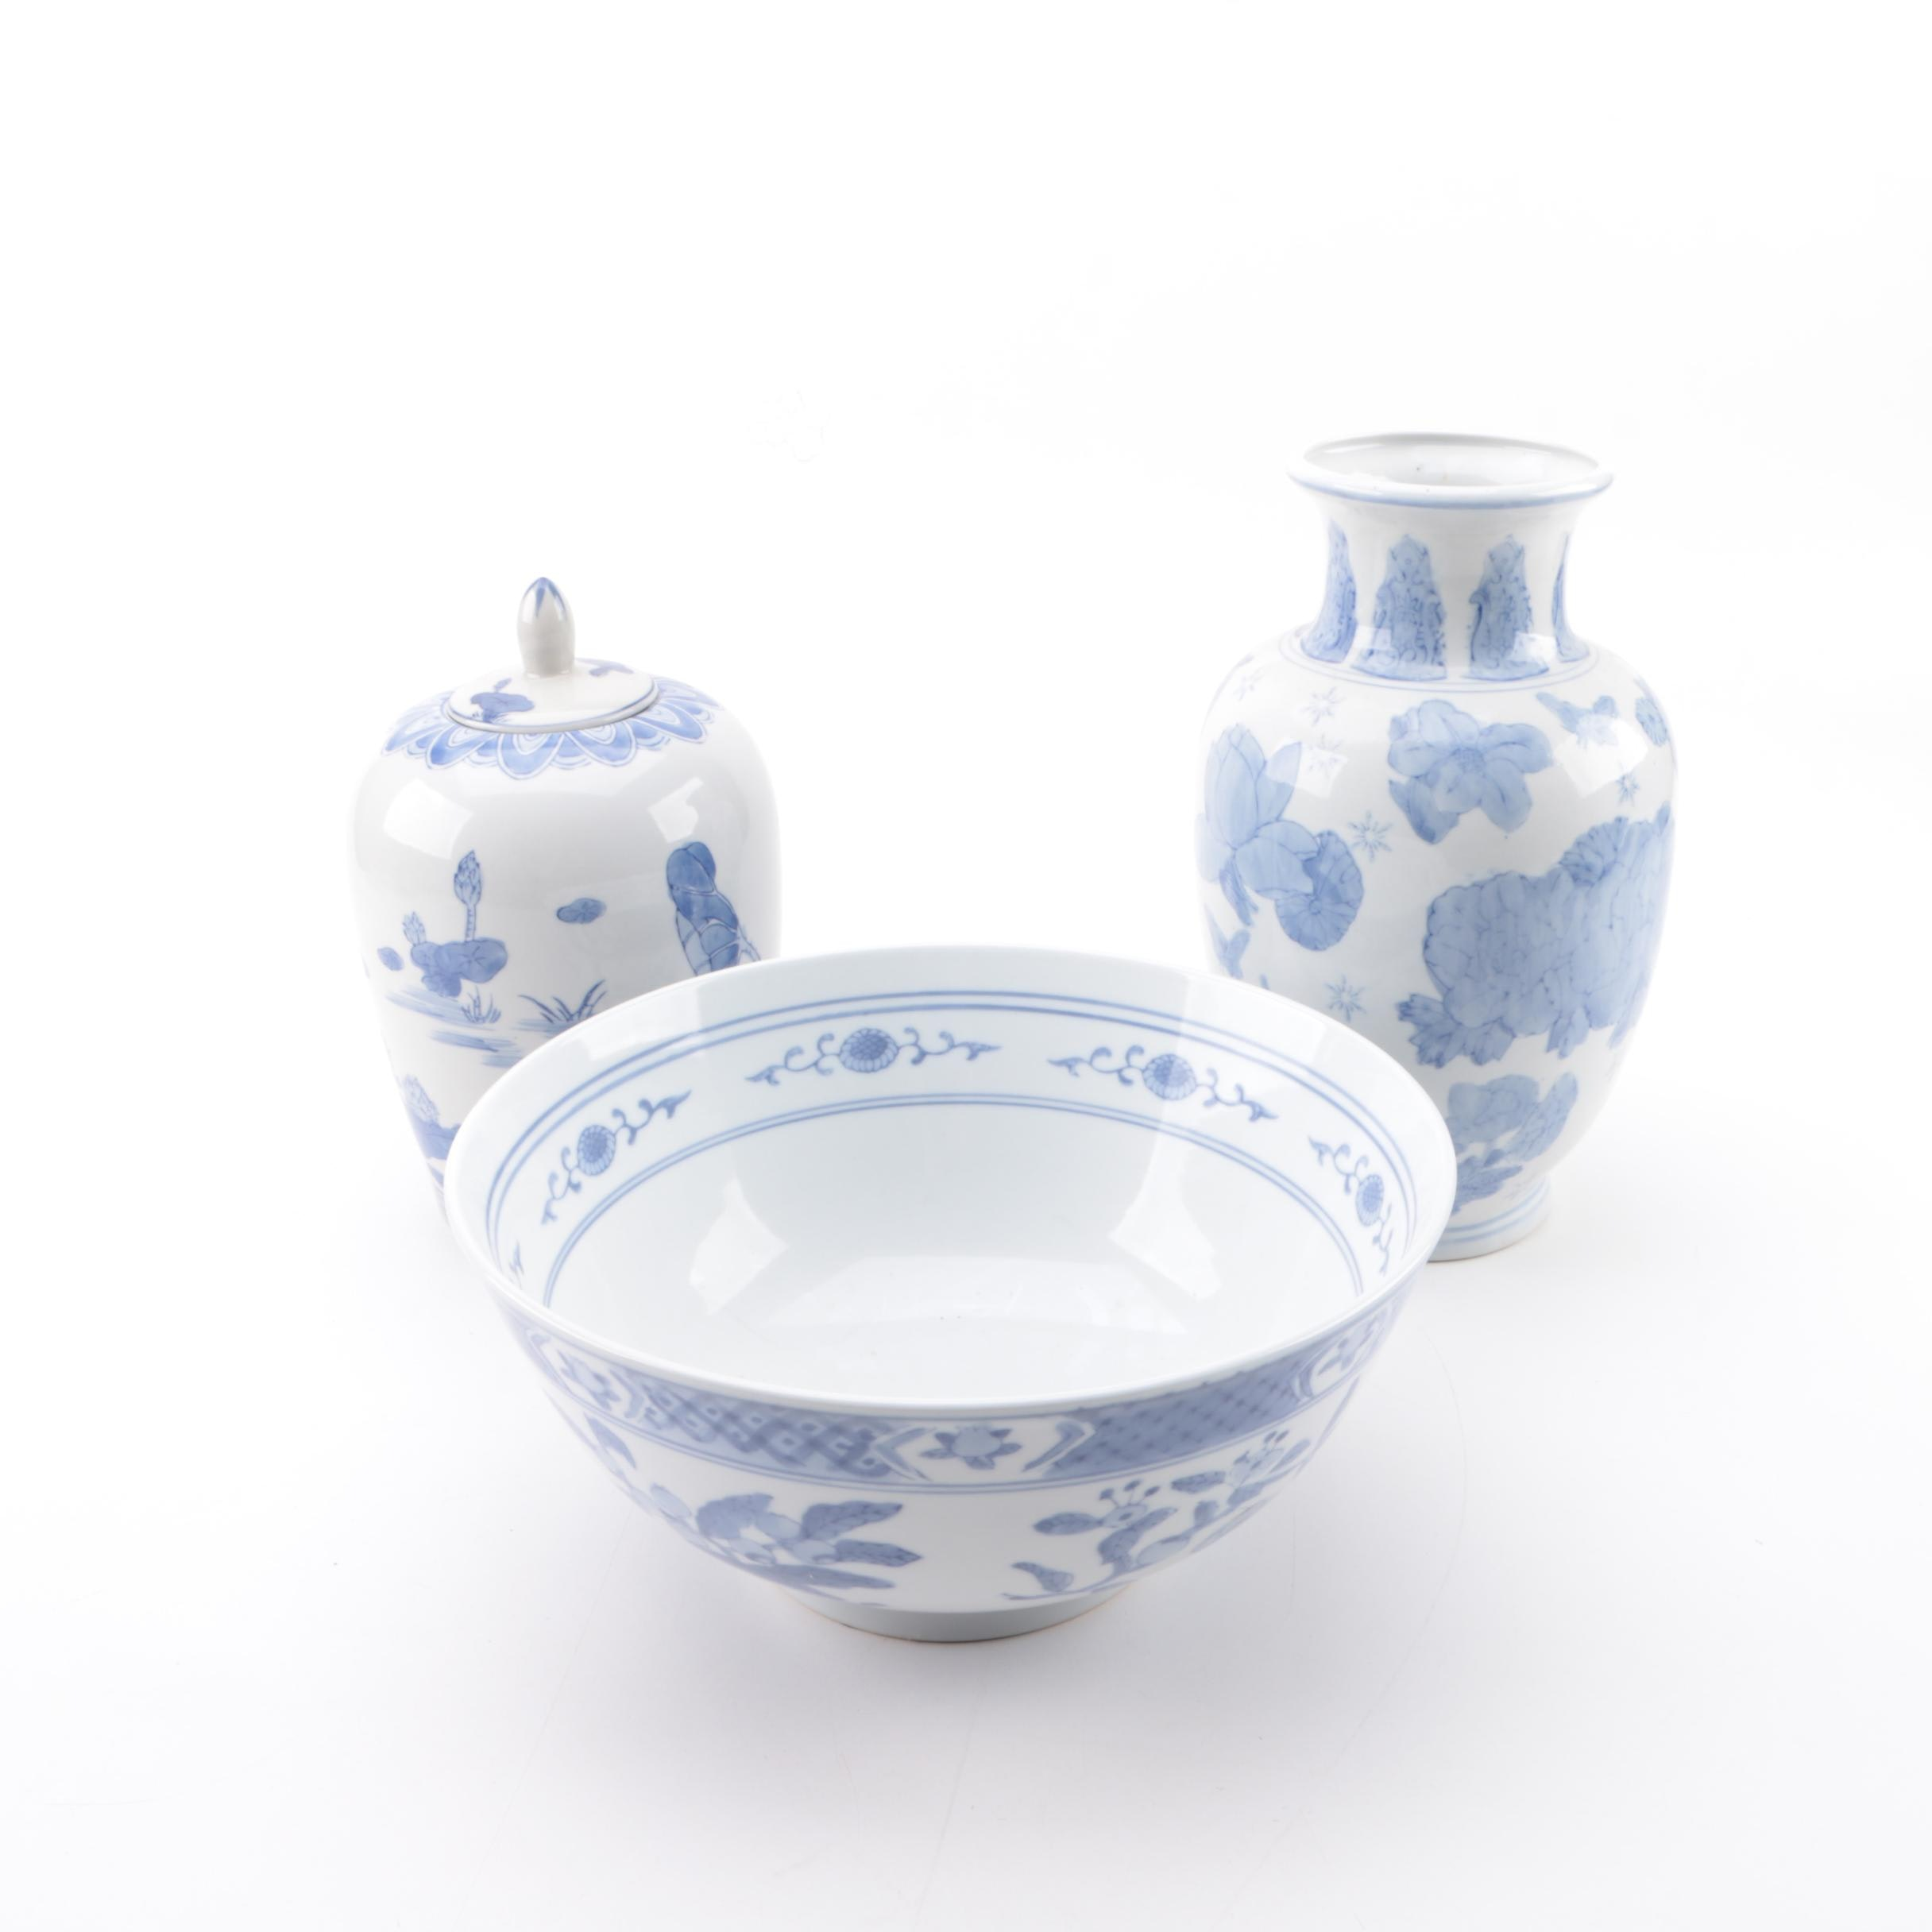 Chinese Hand-Painted Blue and White Porcelain Vase, Bowl, and Ginger Jar